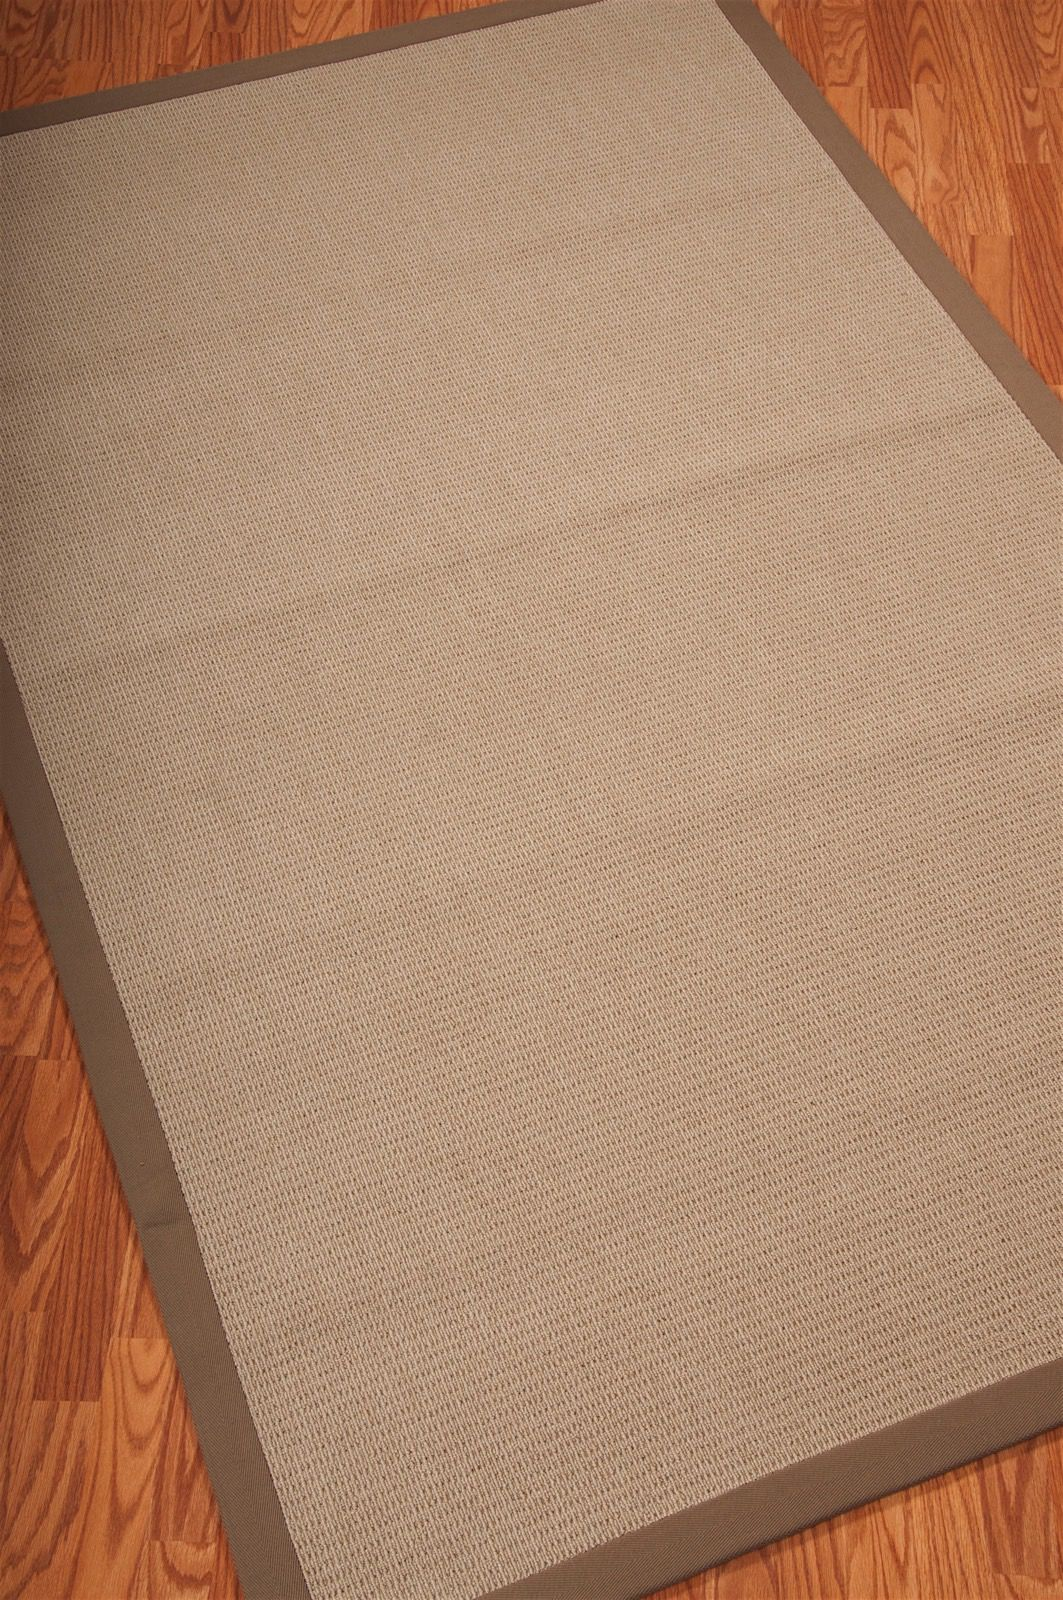 Nourison sisal soft natural fiber area rug collection for Soft area rugs